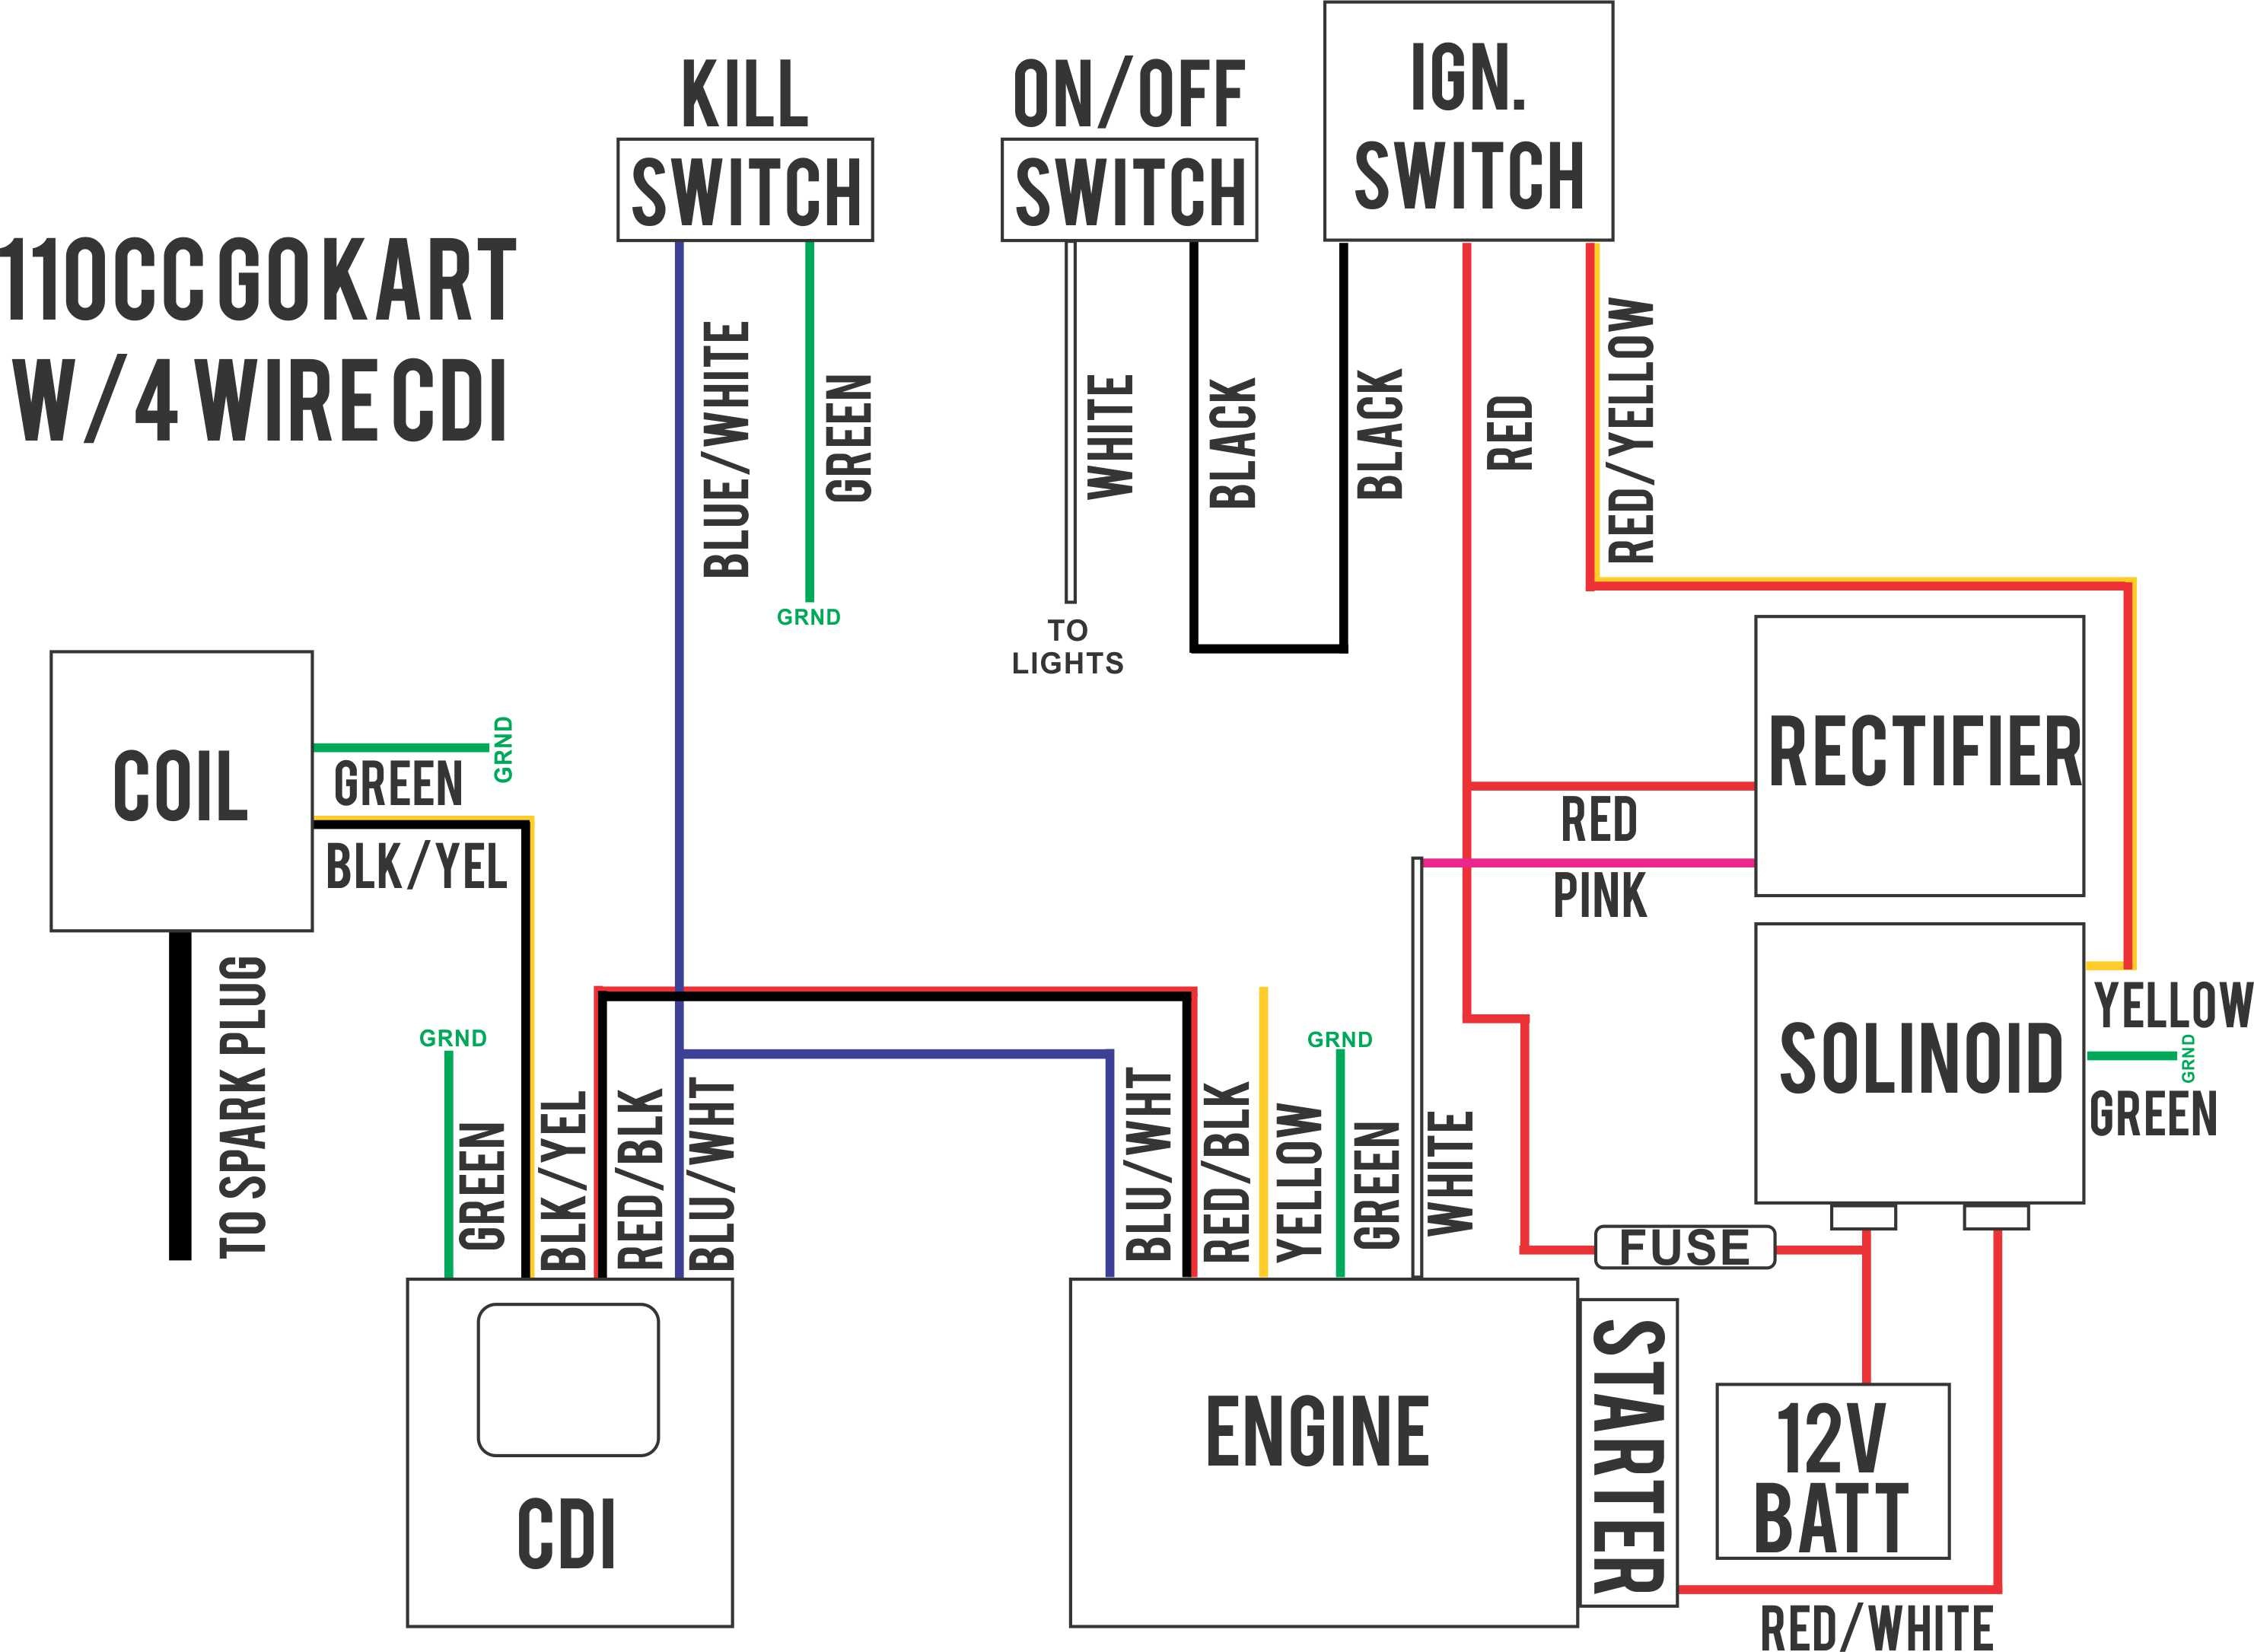 2 Cycle Engine Diagram Stroke Scooter Wiring Diagram Get Free Image About Wiring Diagram Of 2 Cycle Engine Diagram